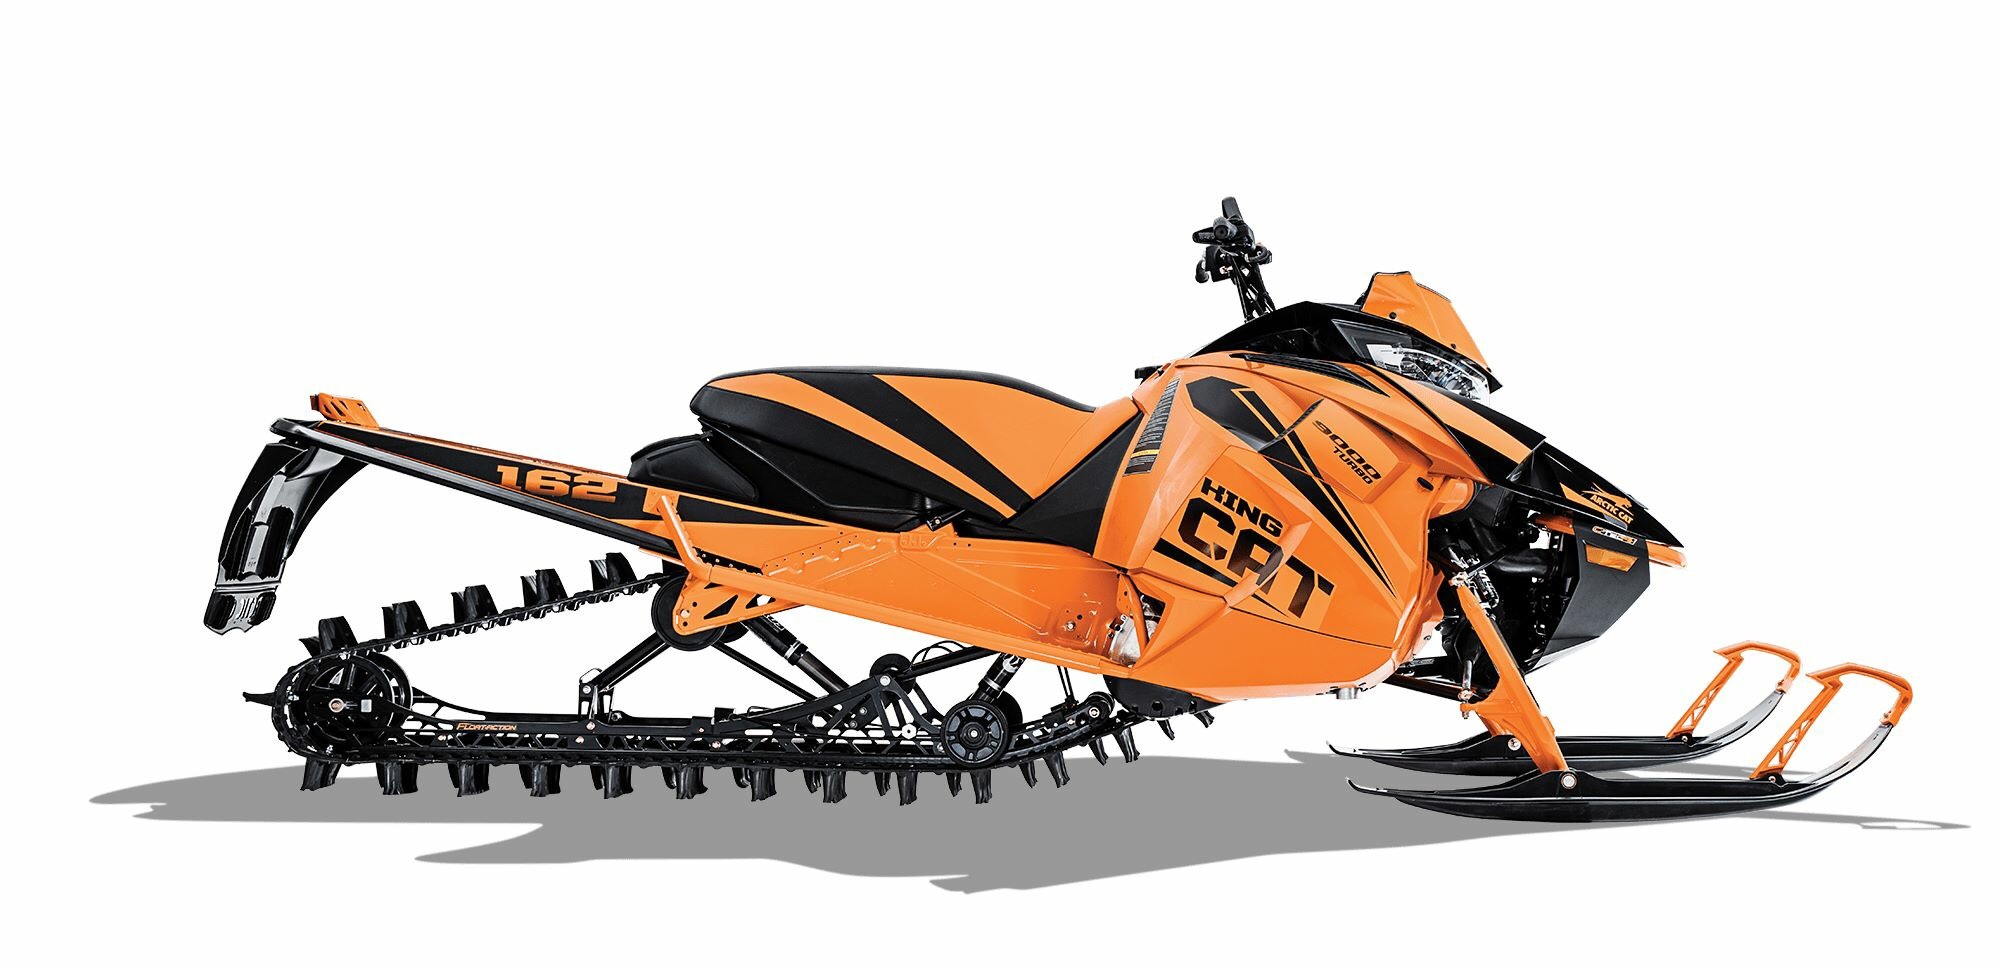 Introducing the all new king of the mountain coming dec 2016 kingcat turbo from arctic cat snowmobiles